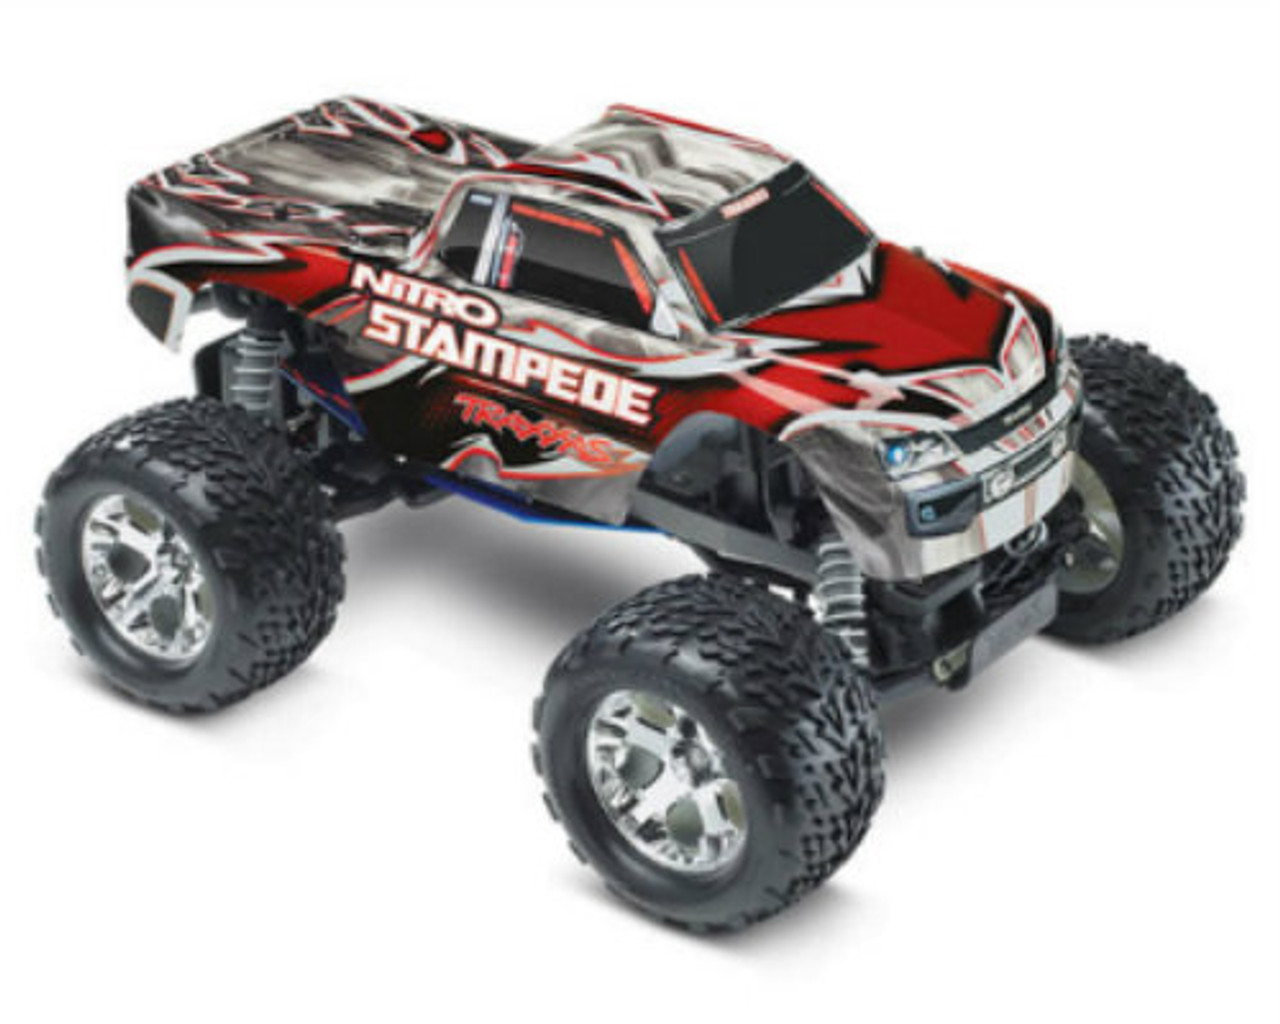 Fits the Traxxas Nitro Stampede 2WD trucks.